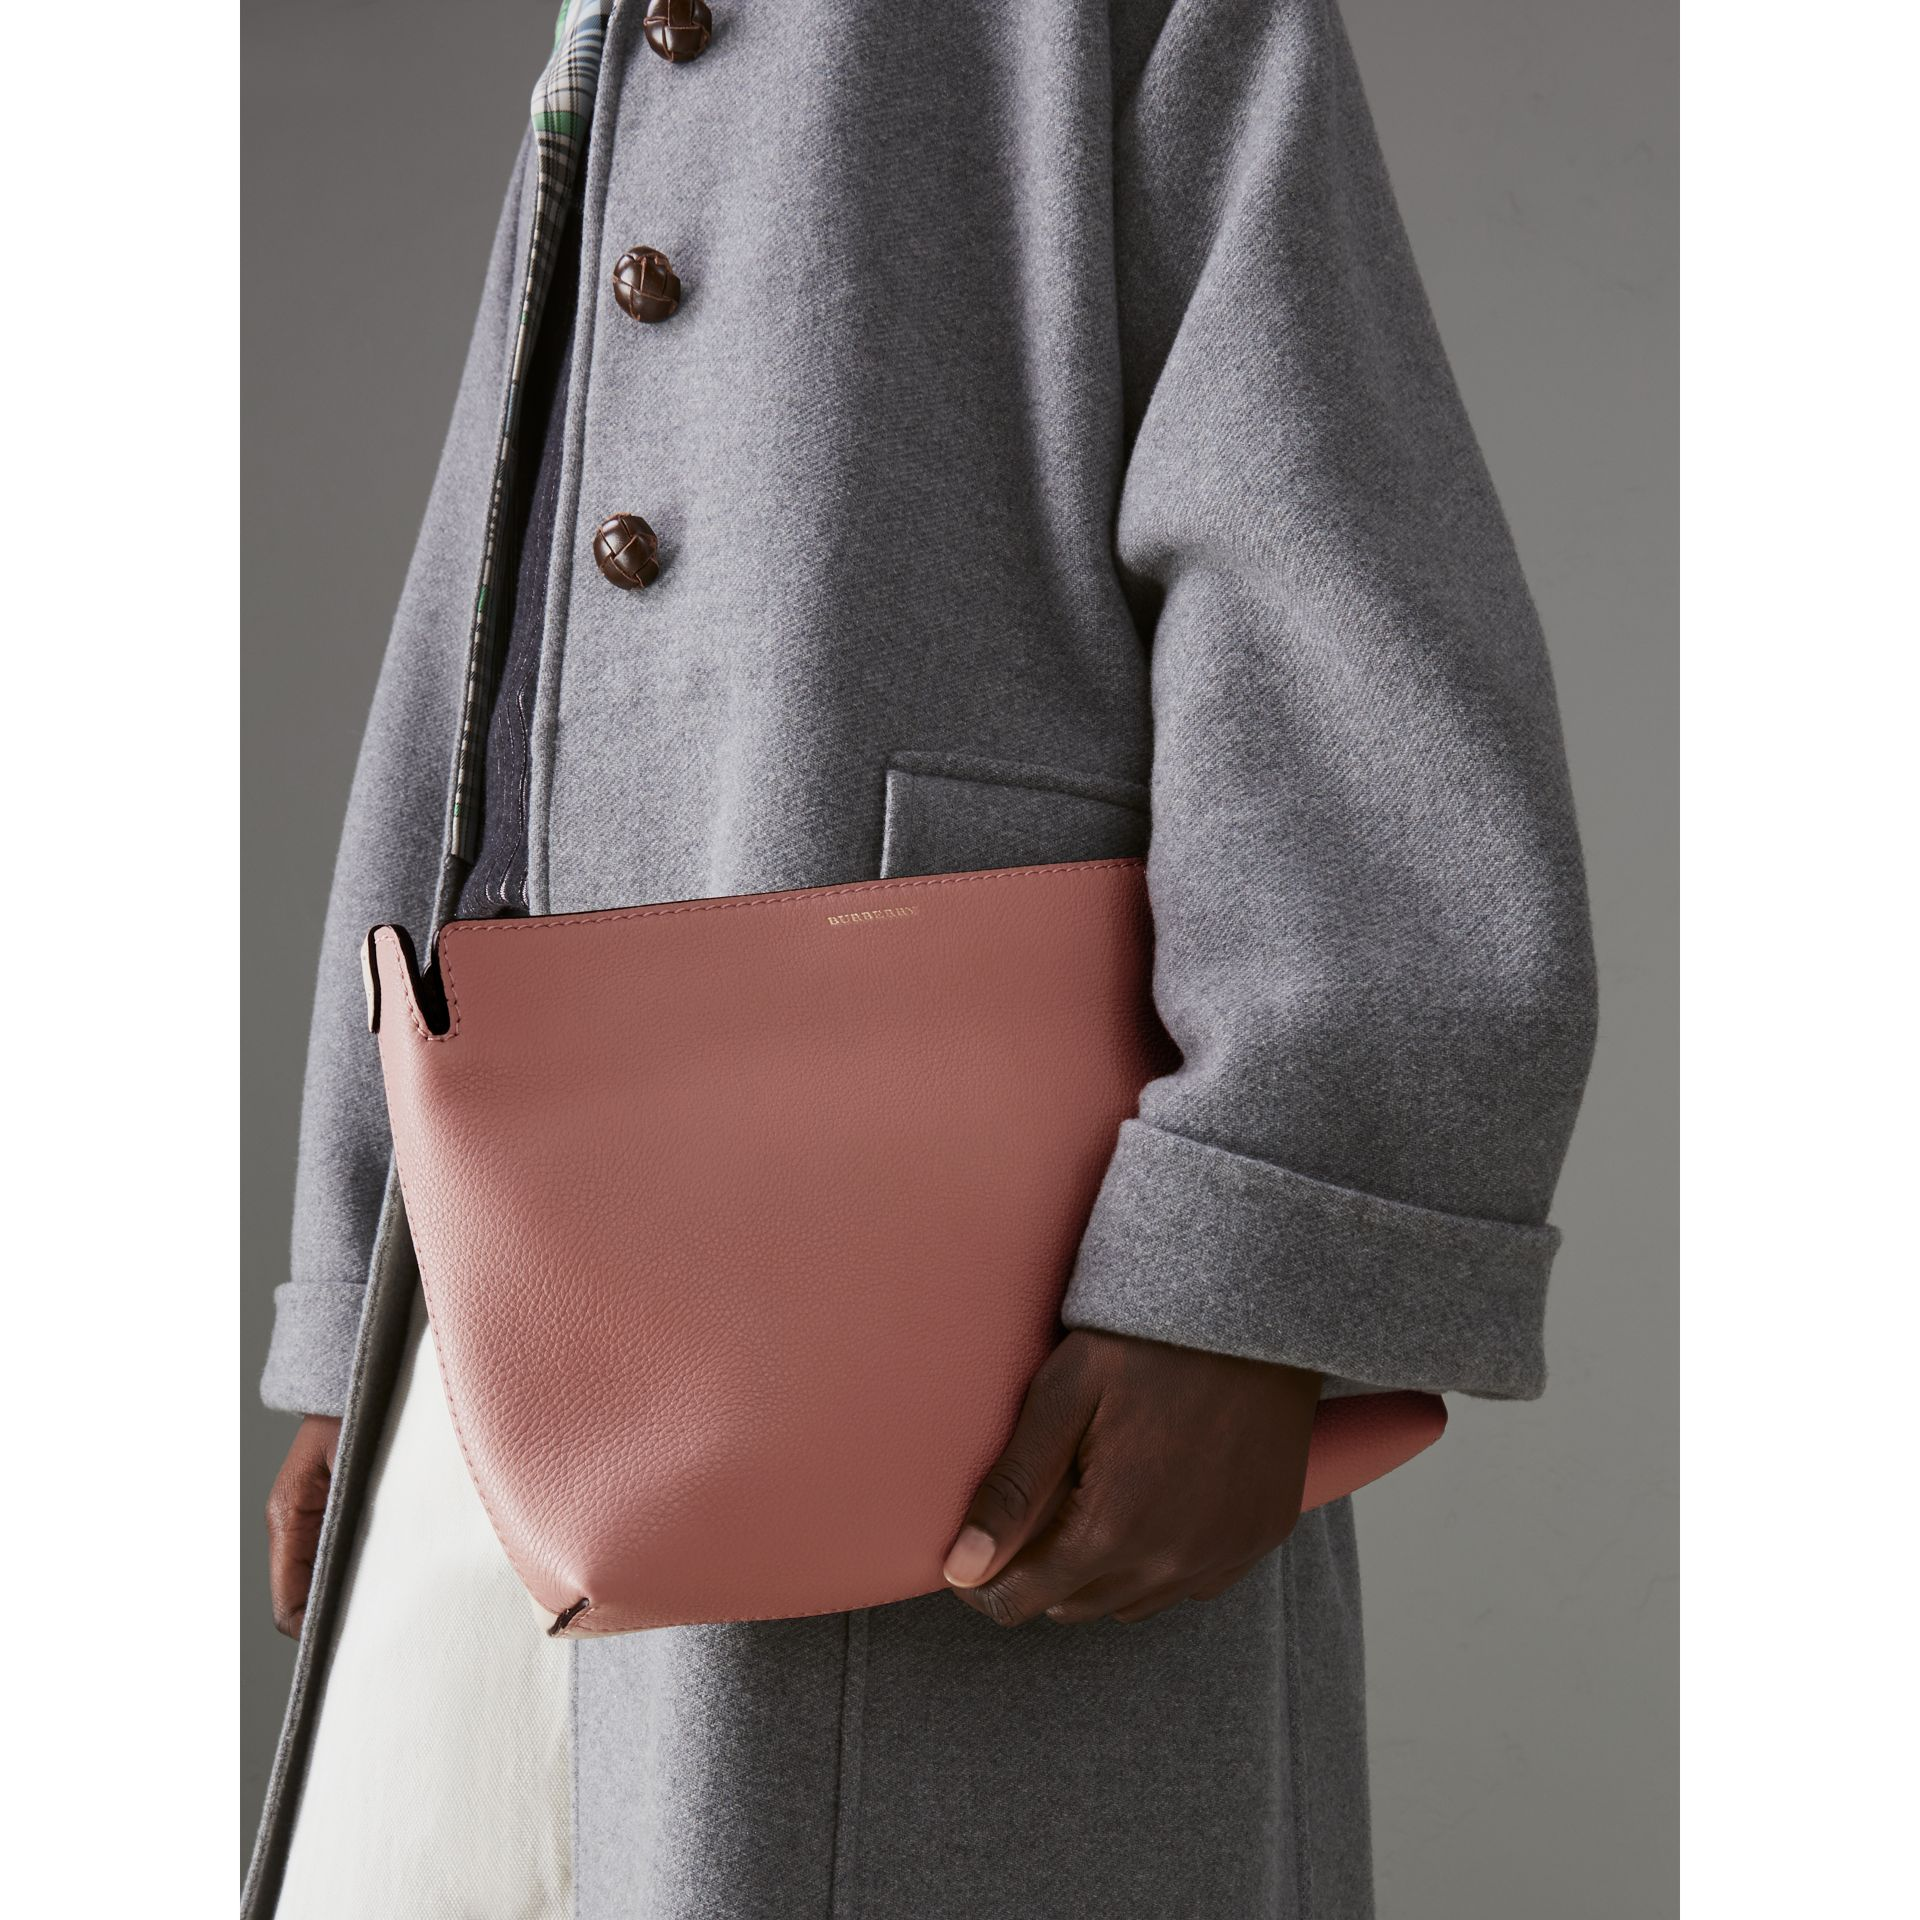 Medium Tri-tone Leather Clutch in Dusty Rose/limestone | Burberry United Kingdom - gallery image 3